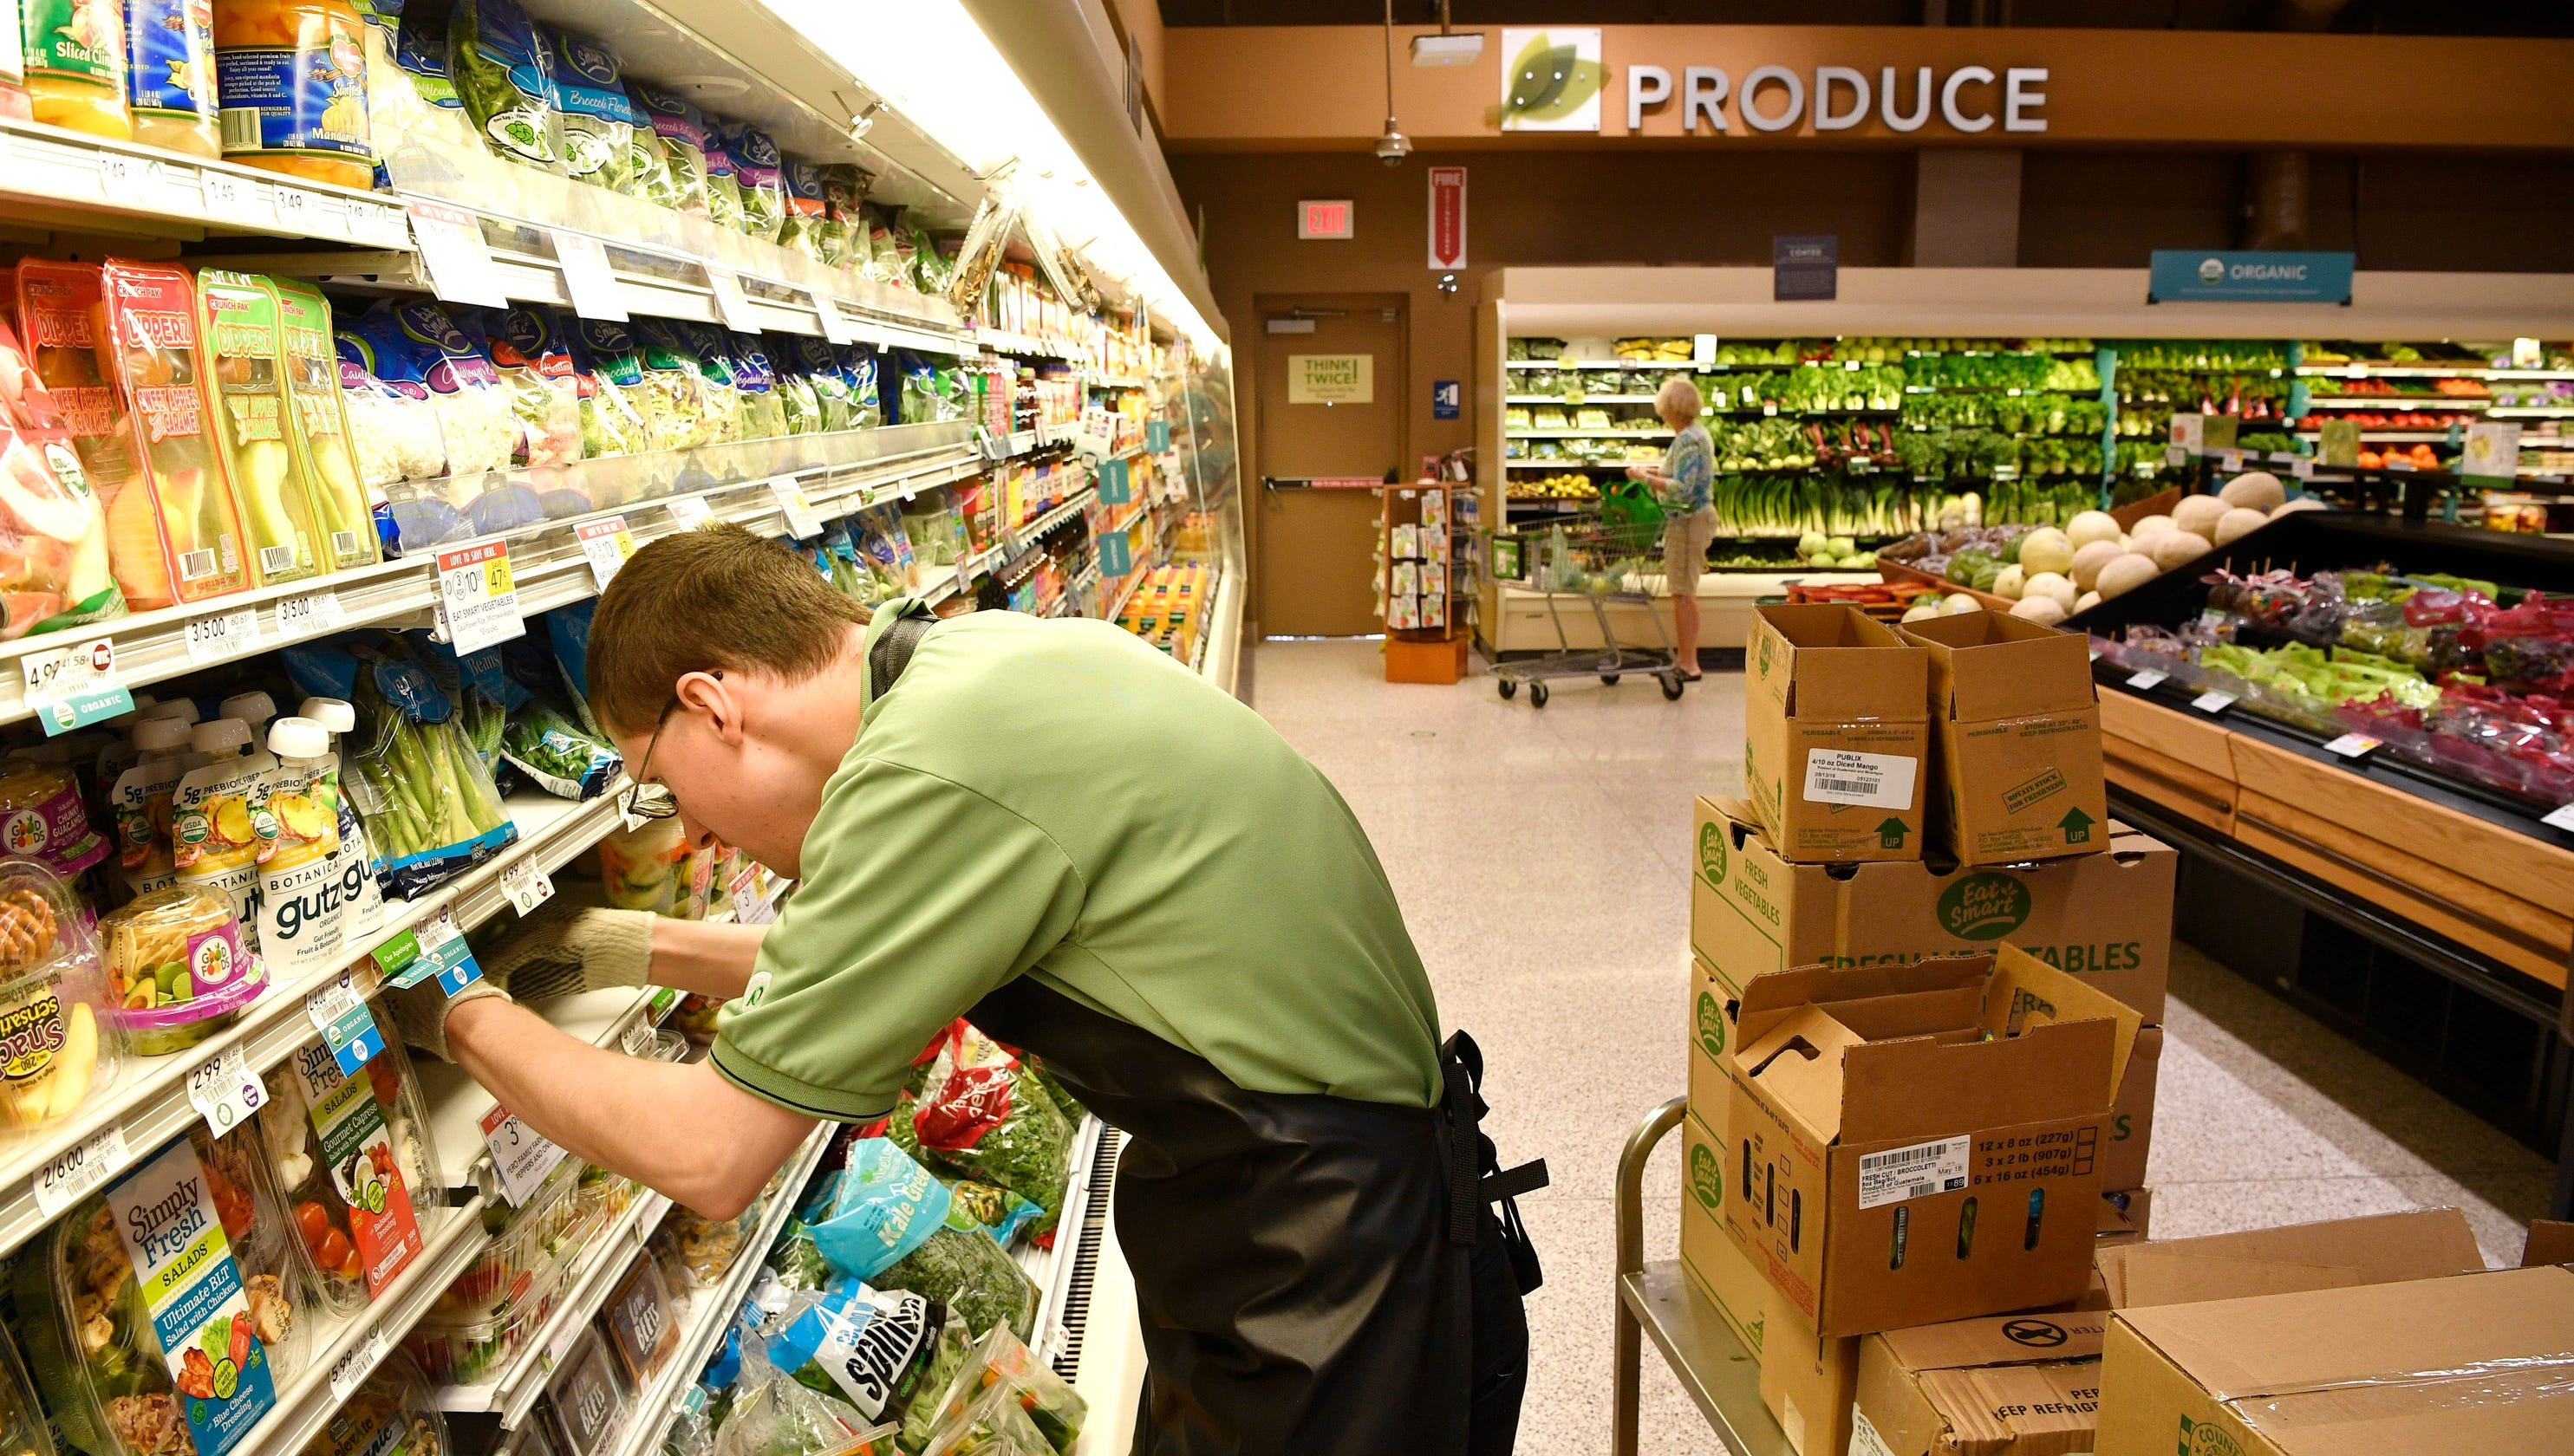 Nashville grocery wars intensify with new stores on the way